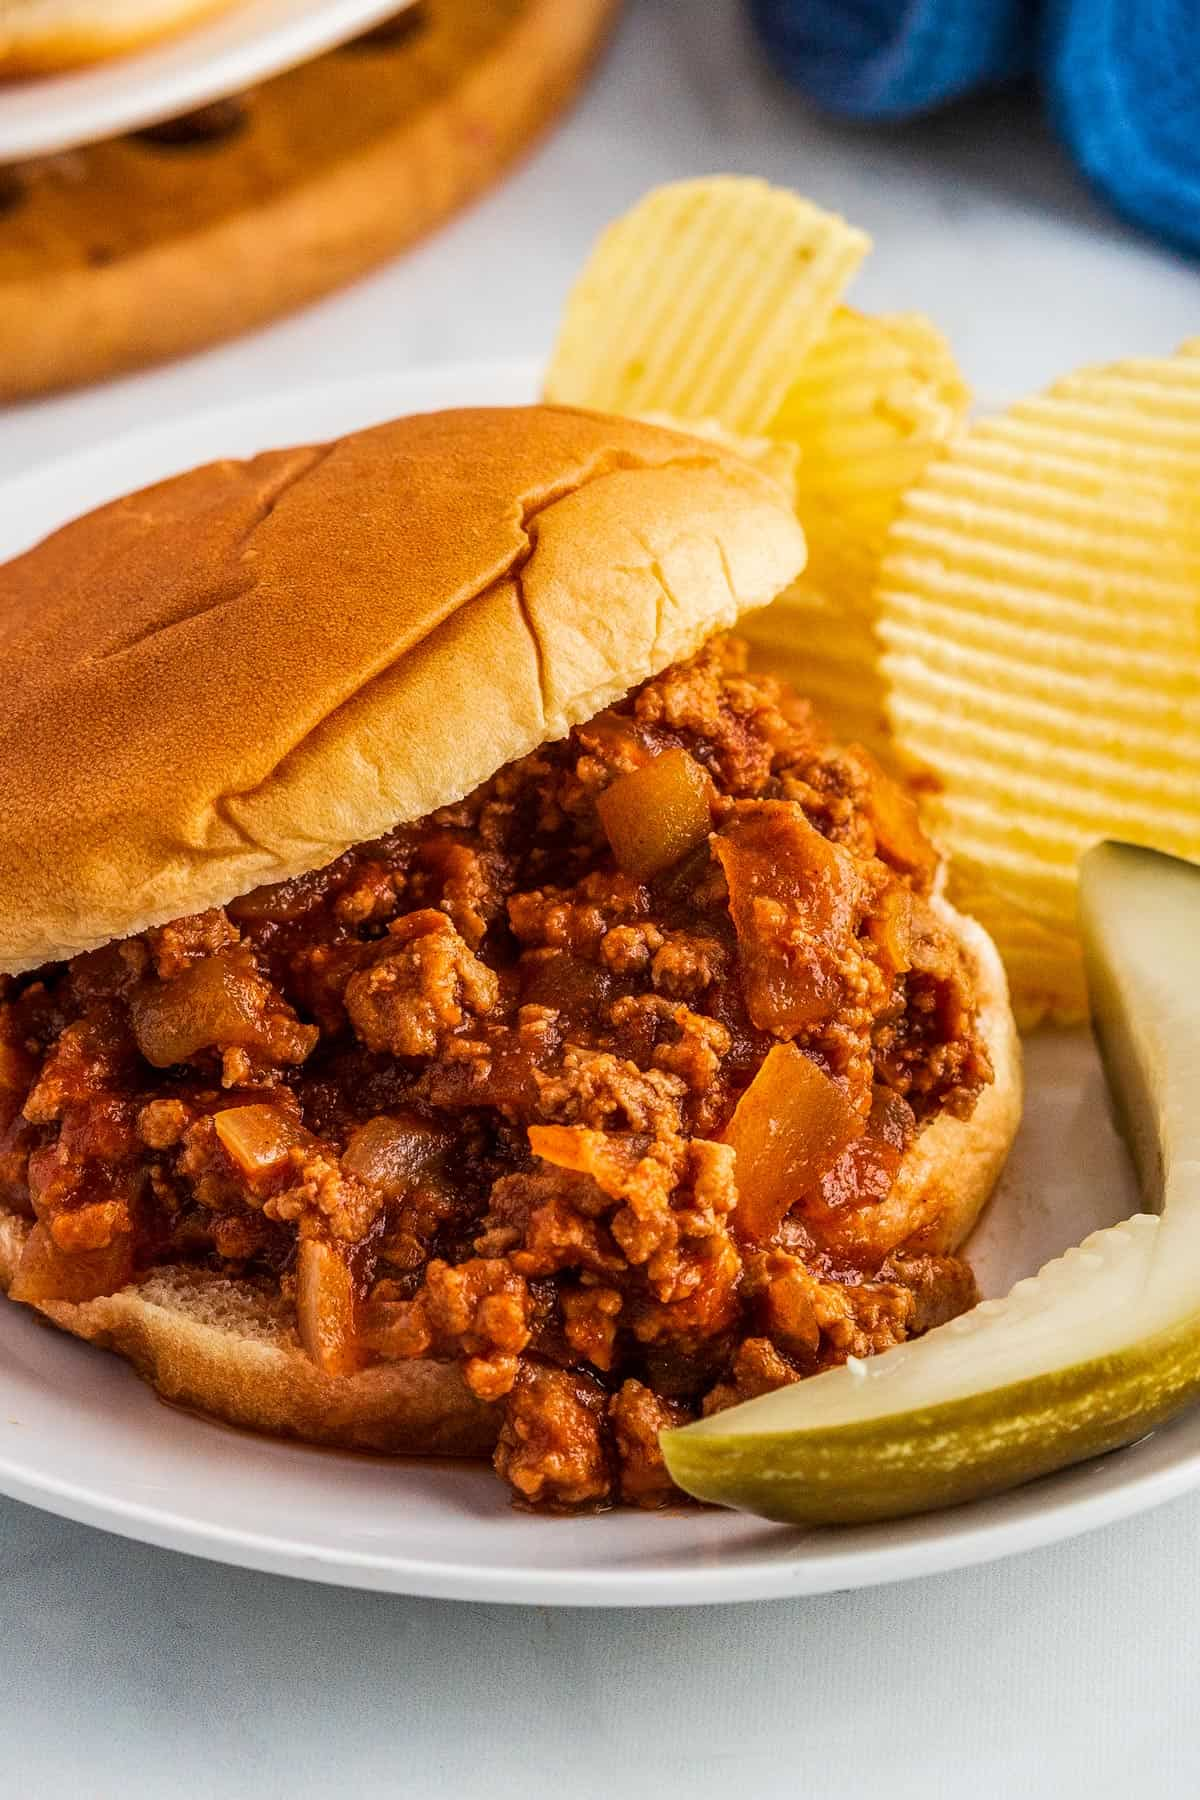 Sloppy Joe on a white plate with pickles and potato chips